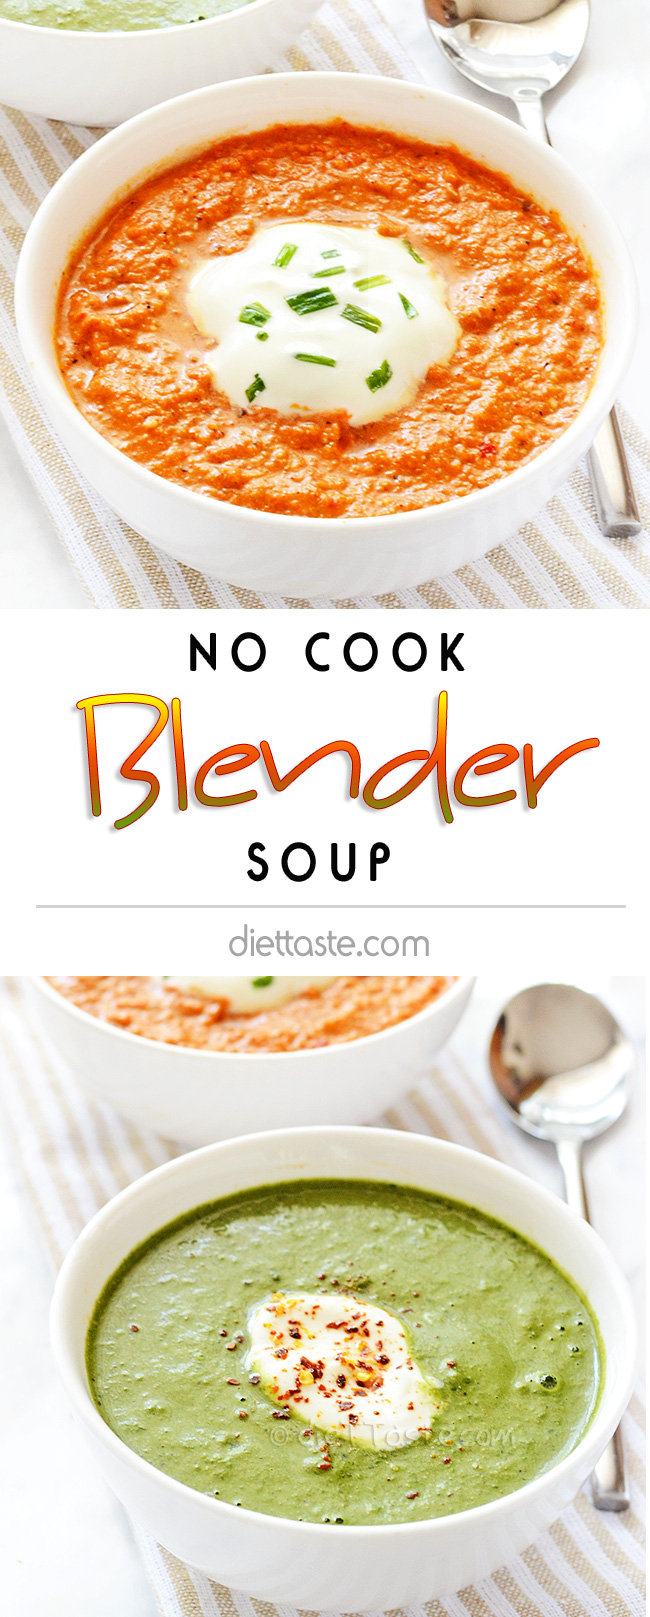 No Cook Blender Soup